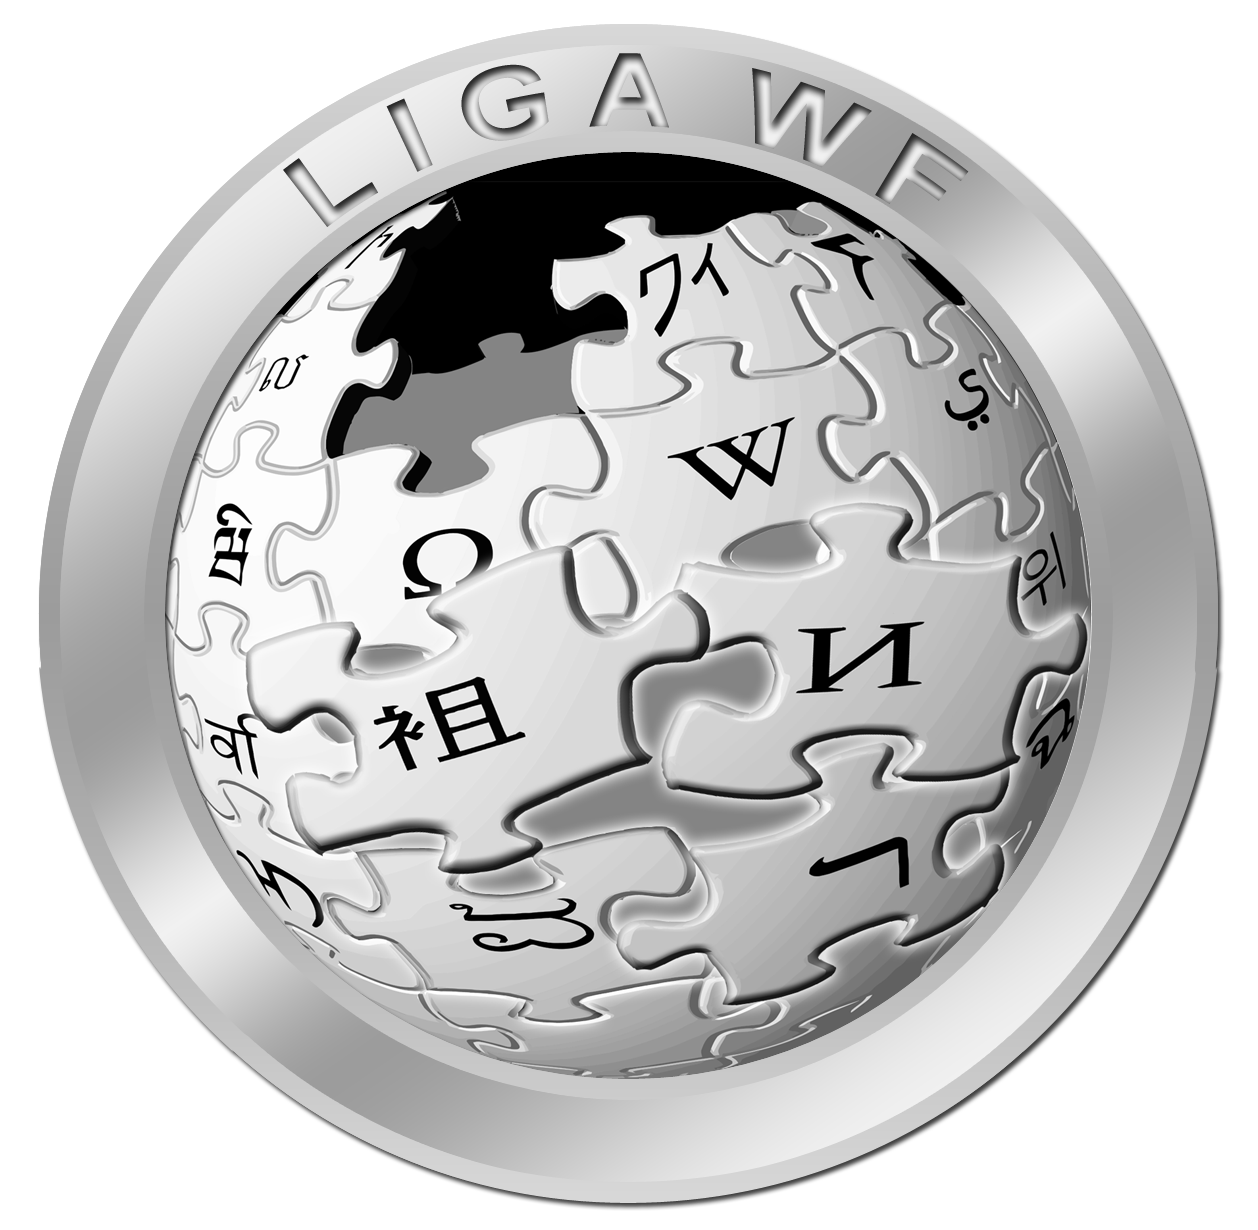 File:LWF Oficial Plata.png.